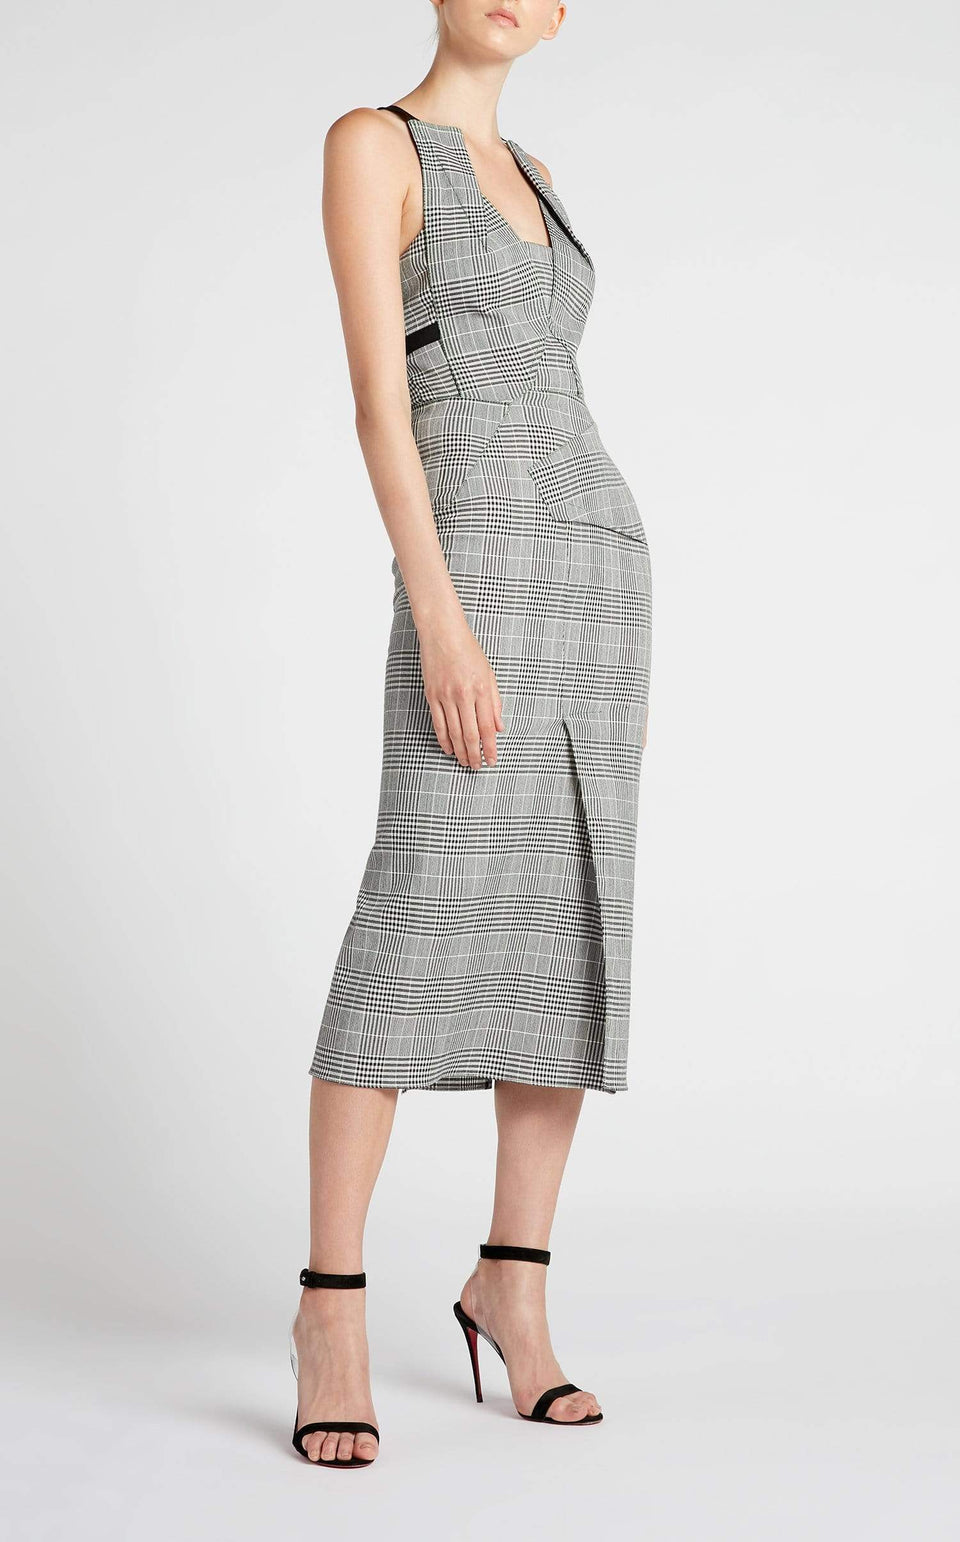 Holloway Dress In Monochrome from Roland Mouret